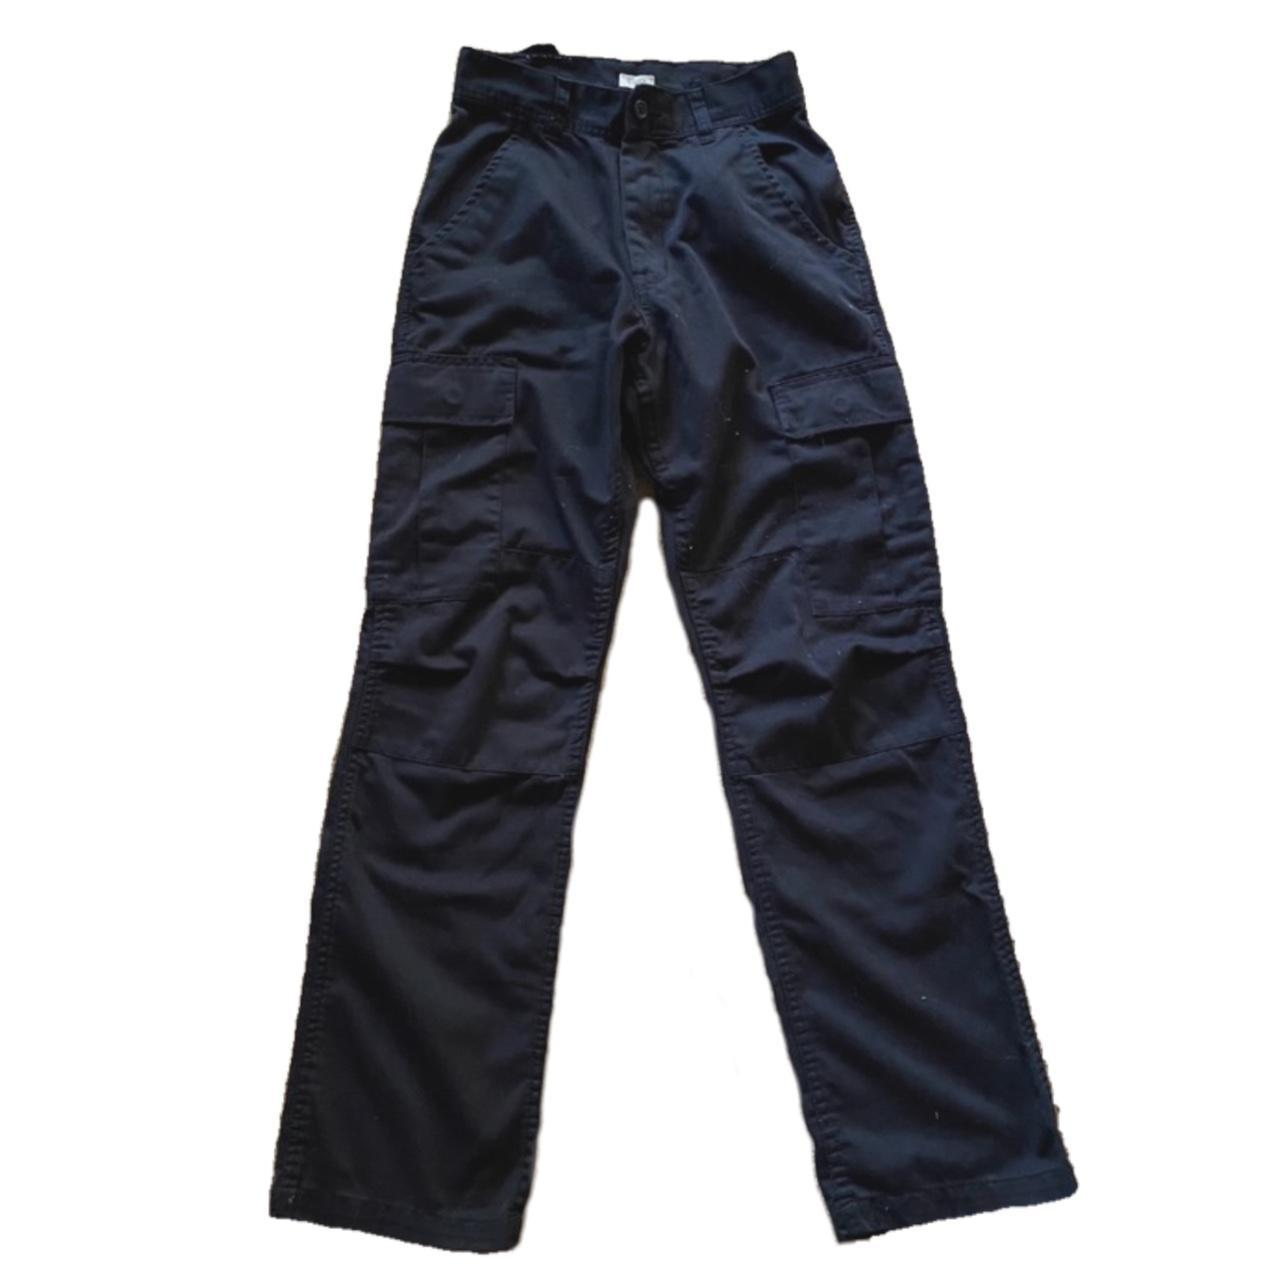 Product Image 1 - BRANDY MELVILLE PIPER WORKER PANTS -